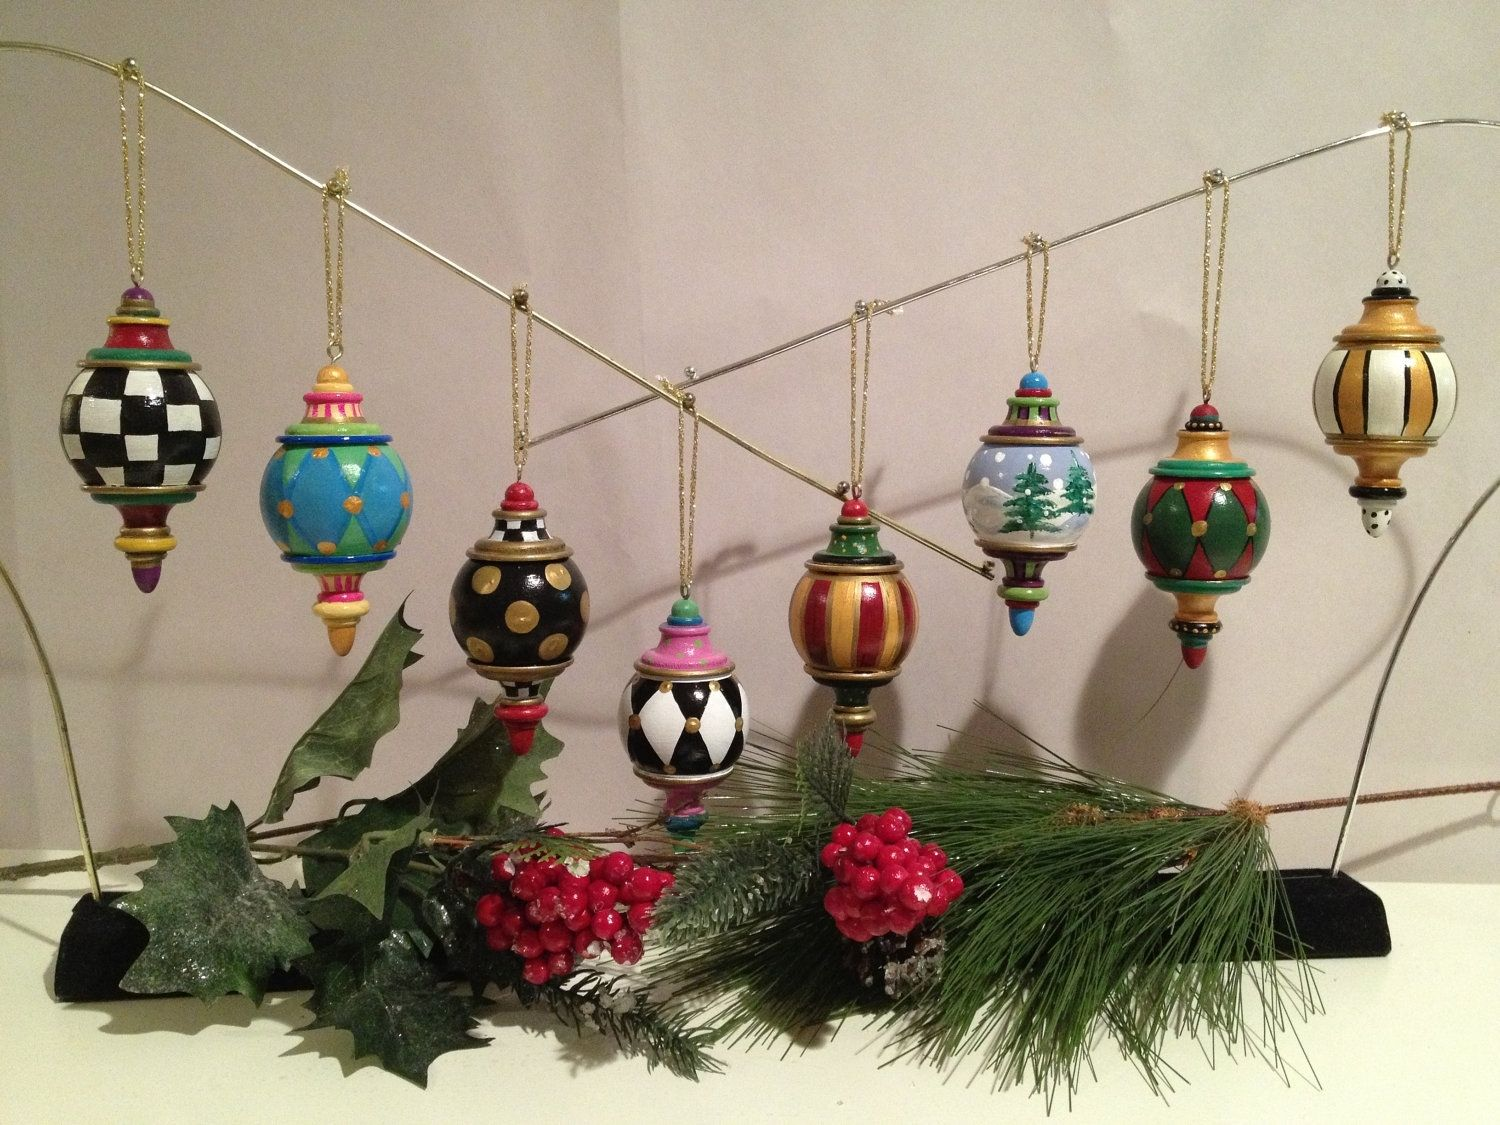 40 Wooden Christmas Decorations